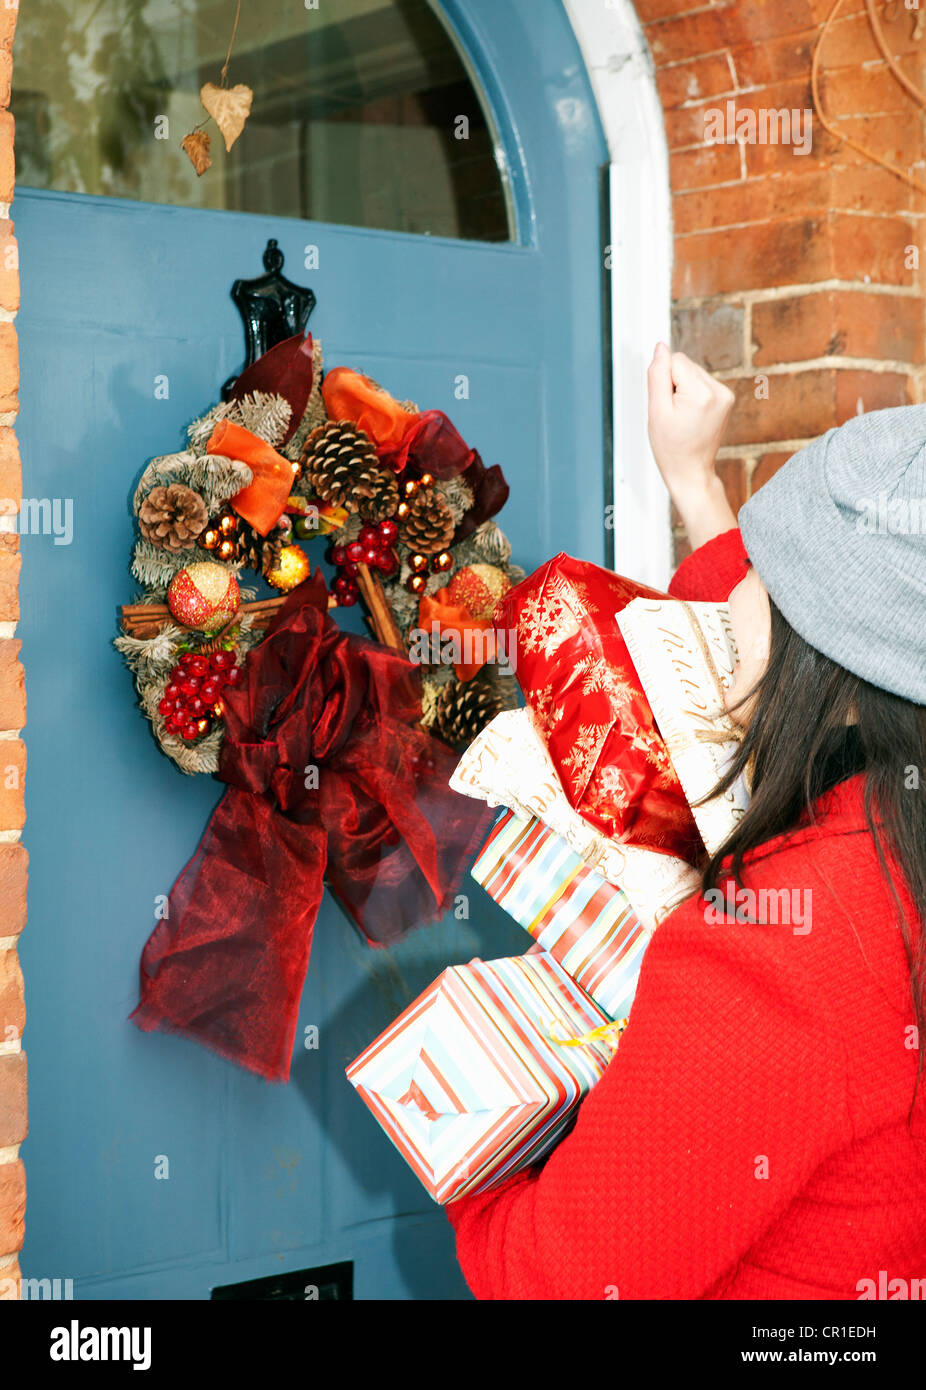 Woman with wrapped gifts at front door - Stock Image